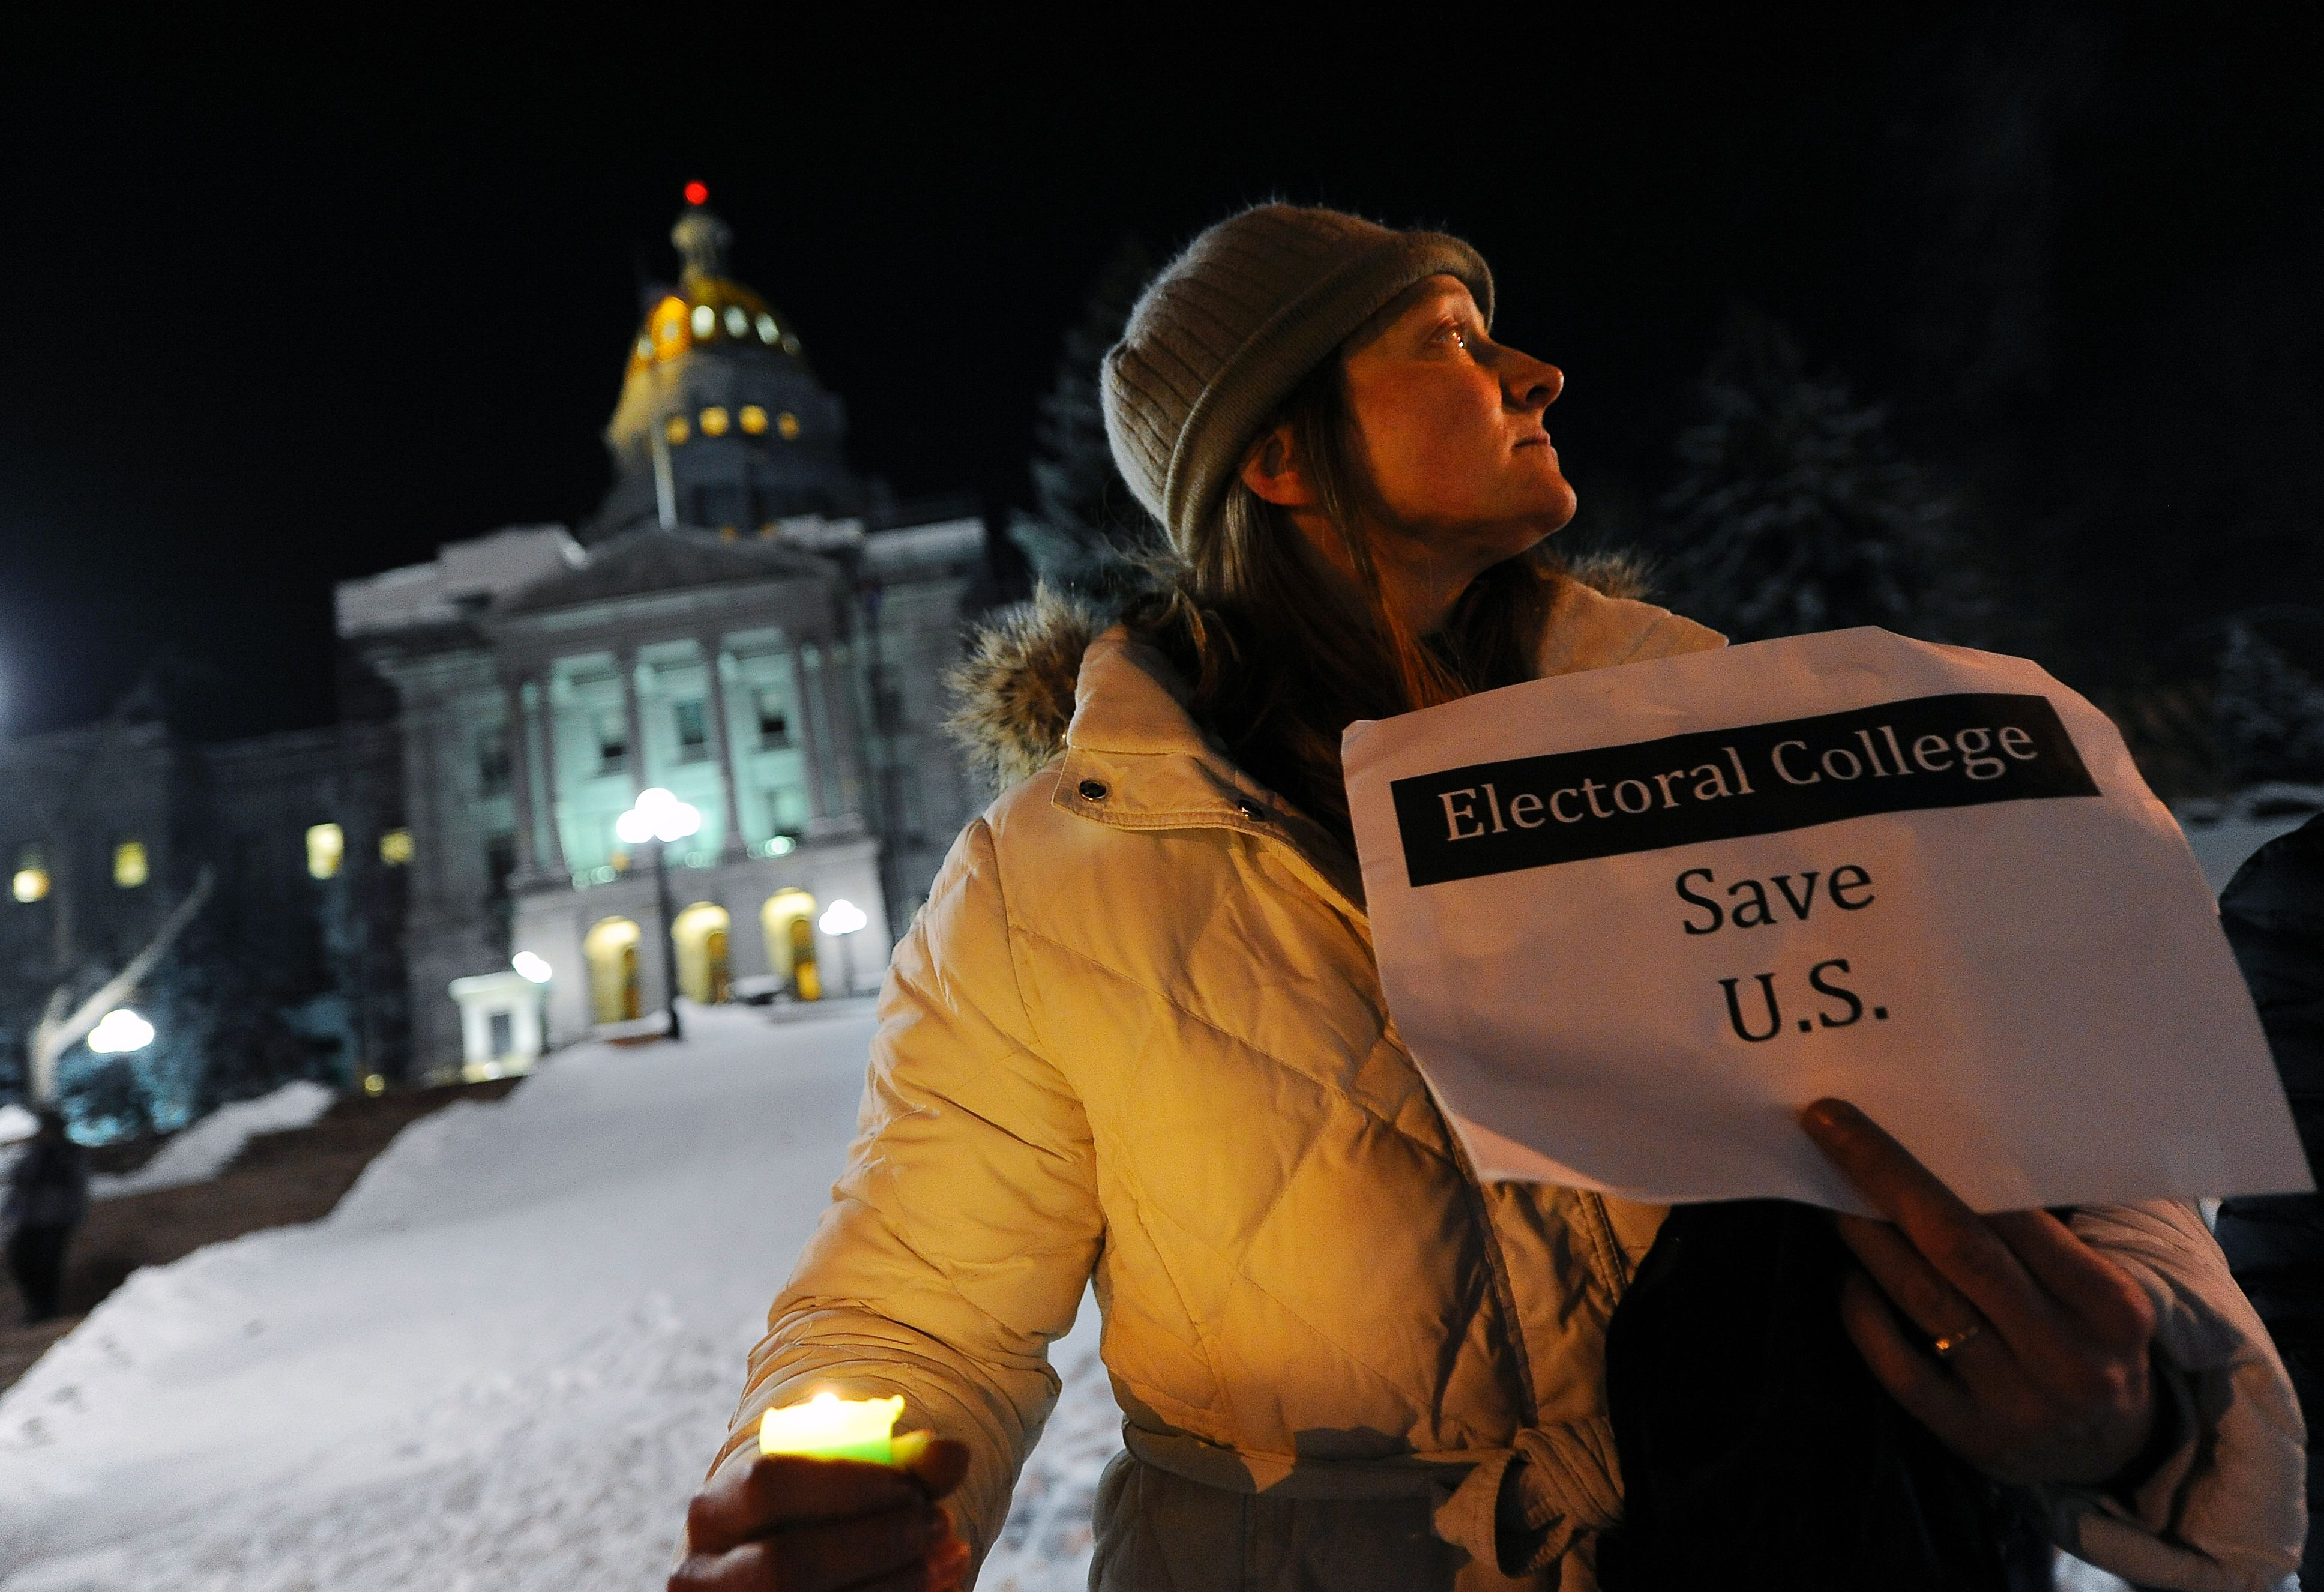 "Ruth Fulton, 44, demonstrates during a candlelight vigil against US President-elect Donald Trump outside the Colorado Capitol building on the eve of the Electoral College vote, in Denver, Colorado on December 18, 2016. ""The Electoral College is supposed to be a safeguard against exactly this sort of person,"" said Fulton. CHRIS SCHNEIDER/AFP/Getty Images"